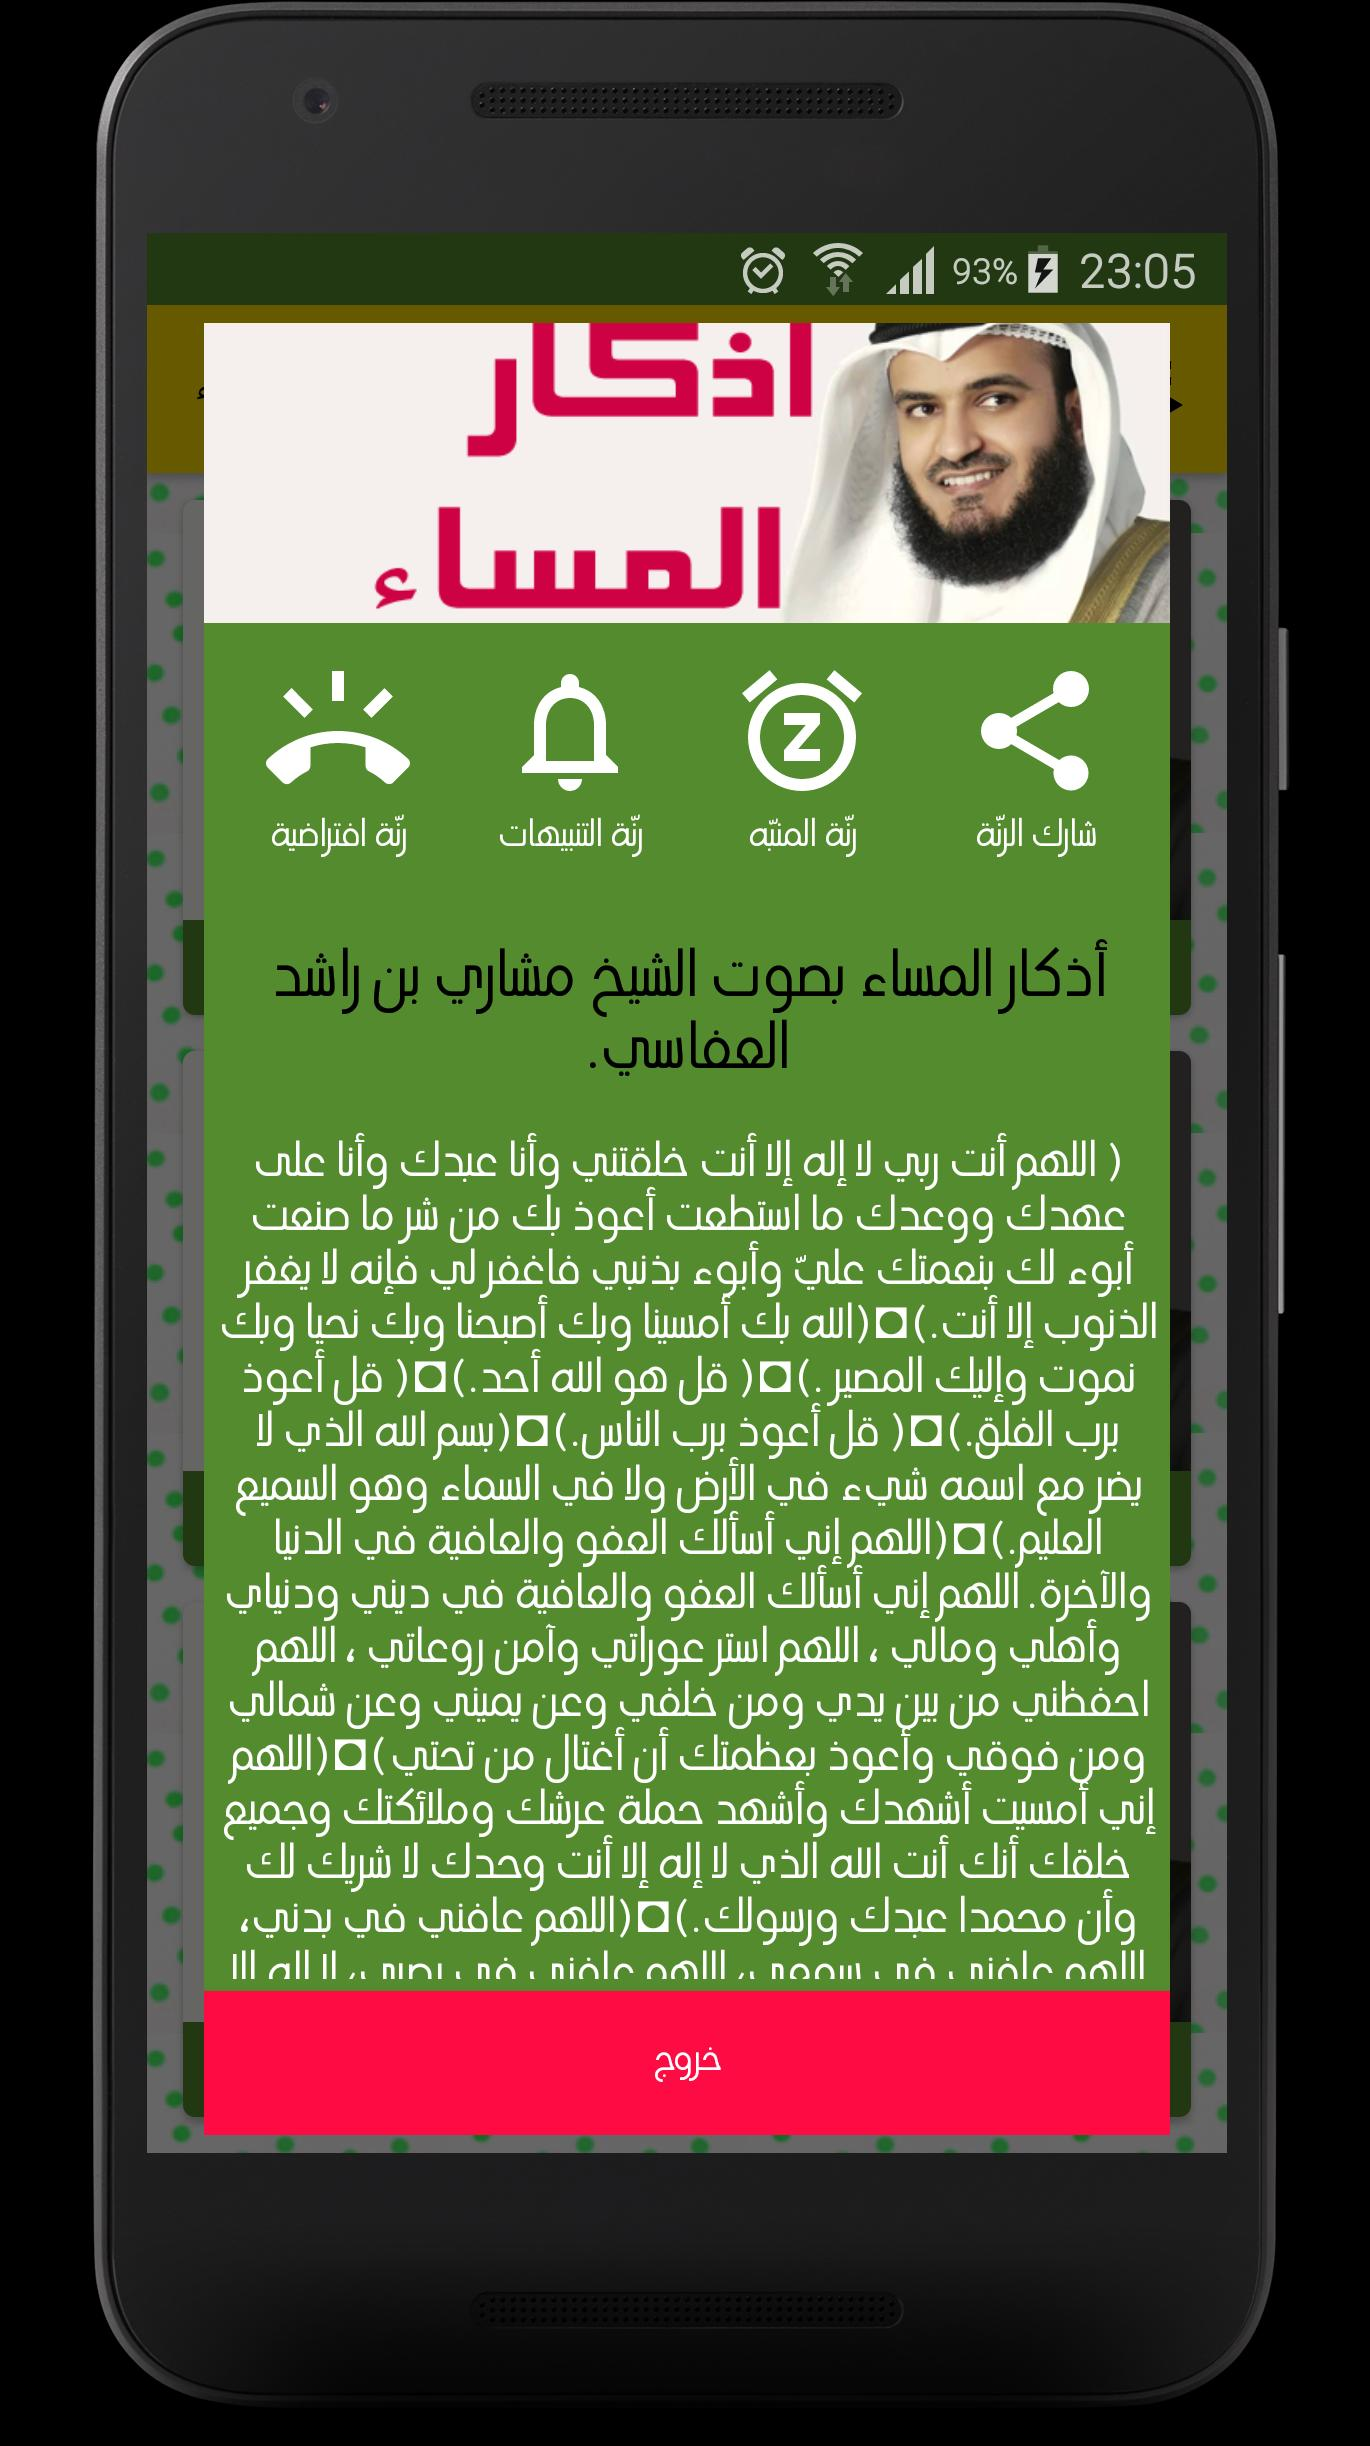 adkar al sabah wa al massa for Android - APK Download